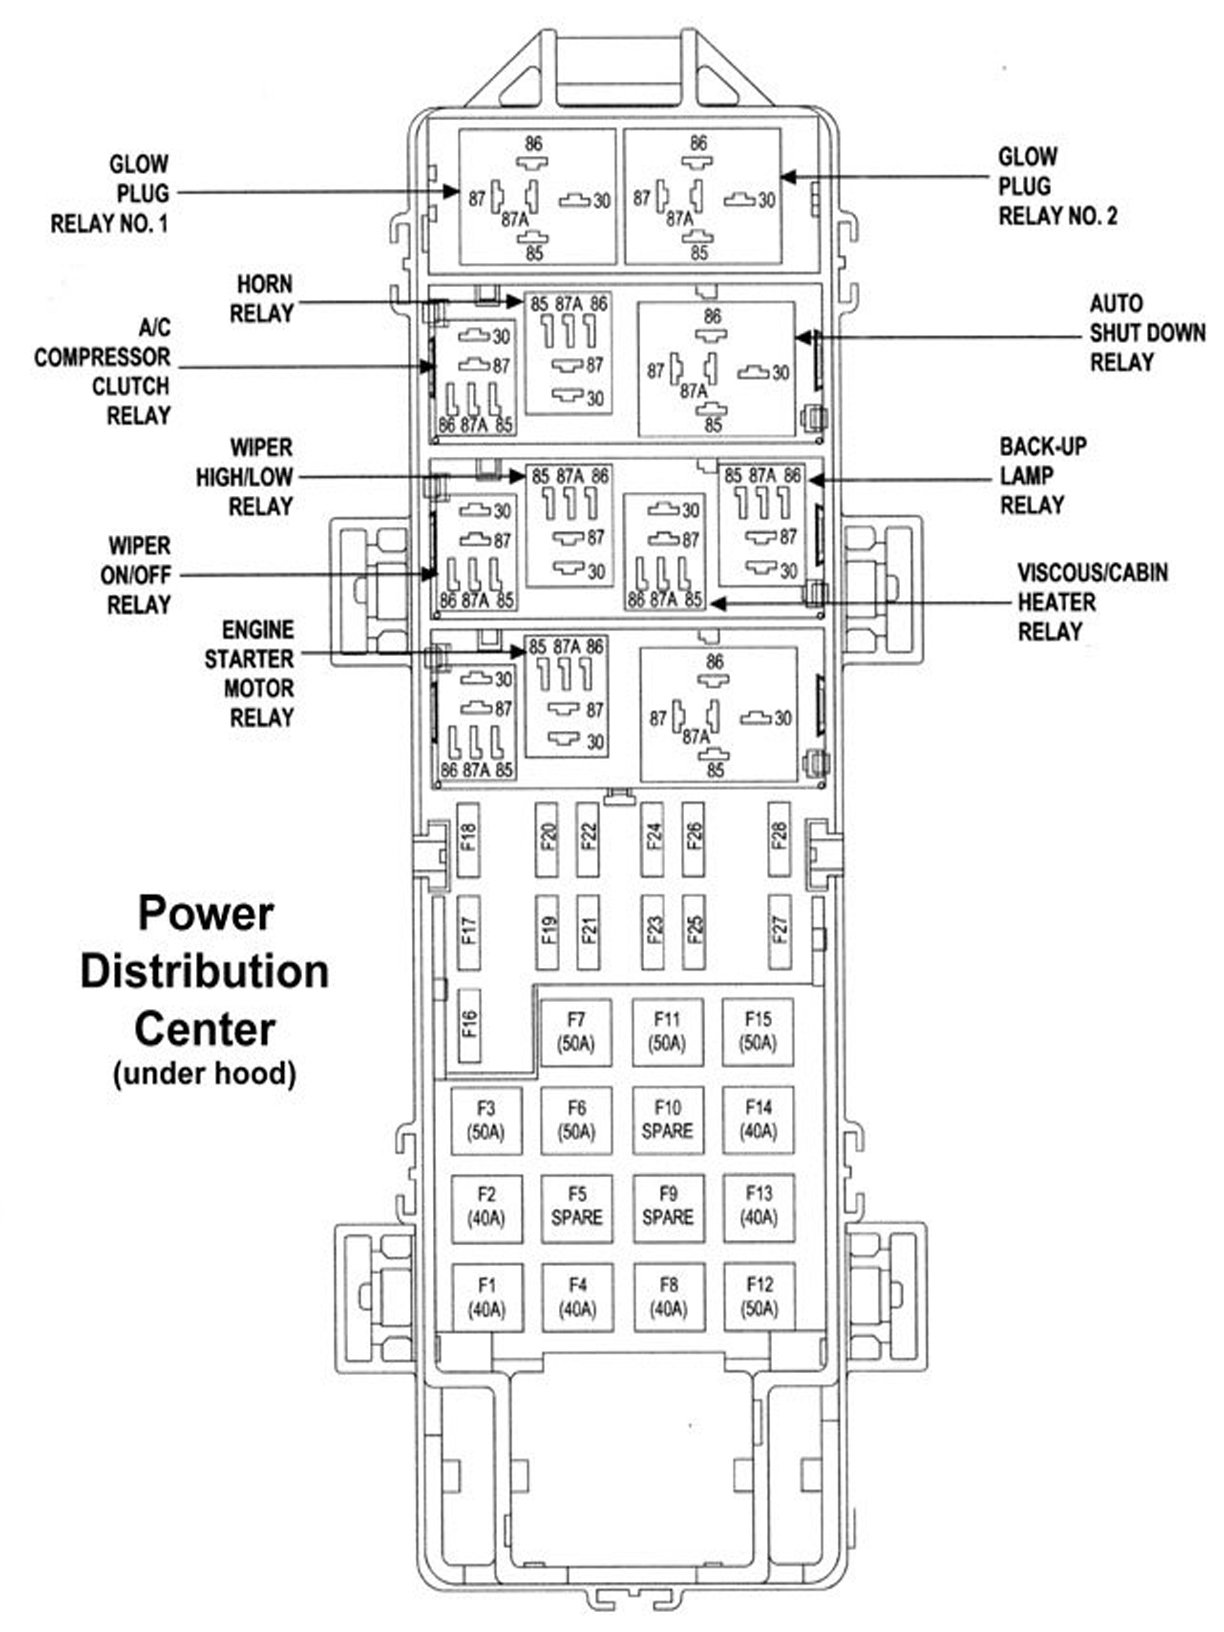 jeep grand cherokee wj 1999 to 2004 fuse box diagram cherokeeforum power distribution center diagram